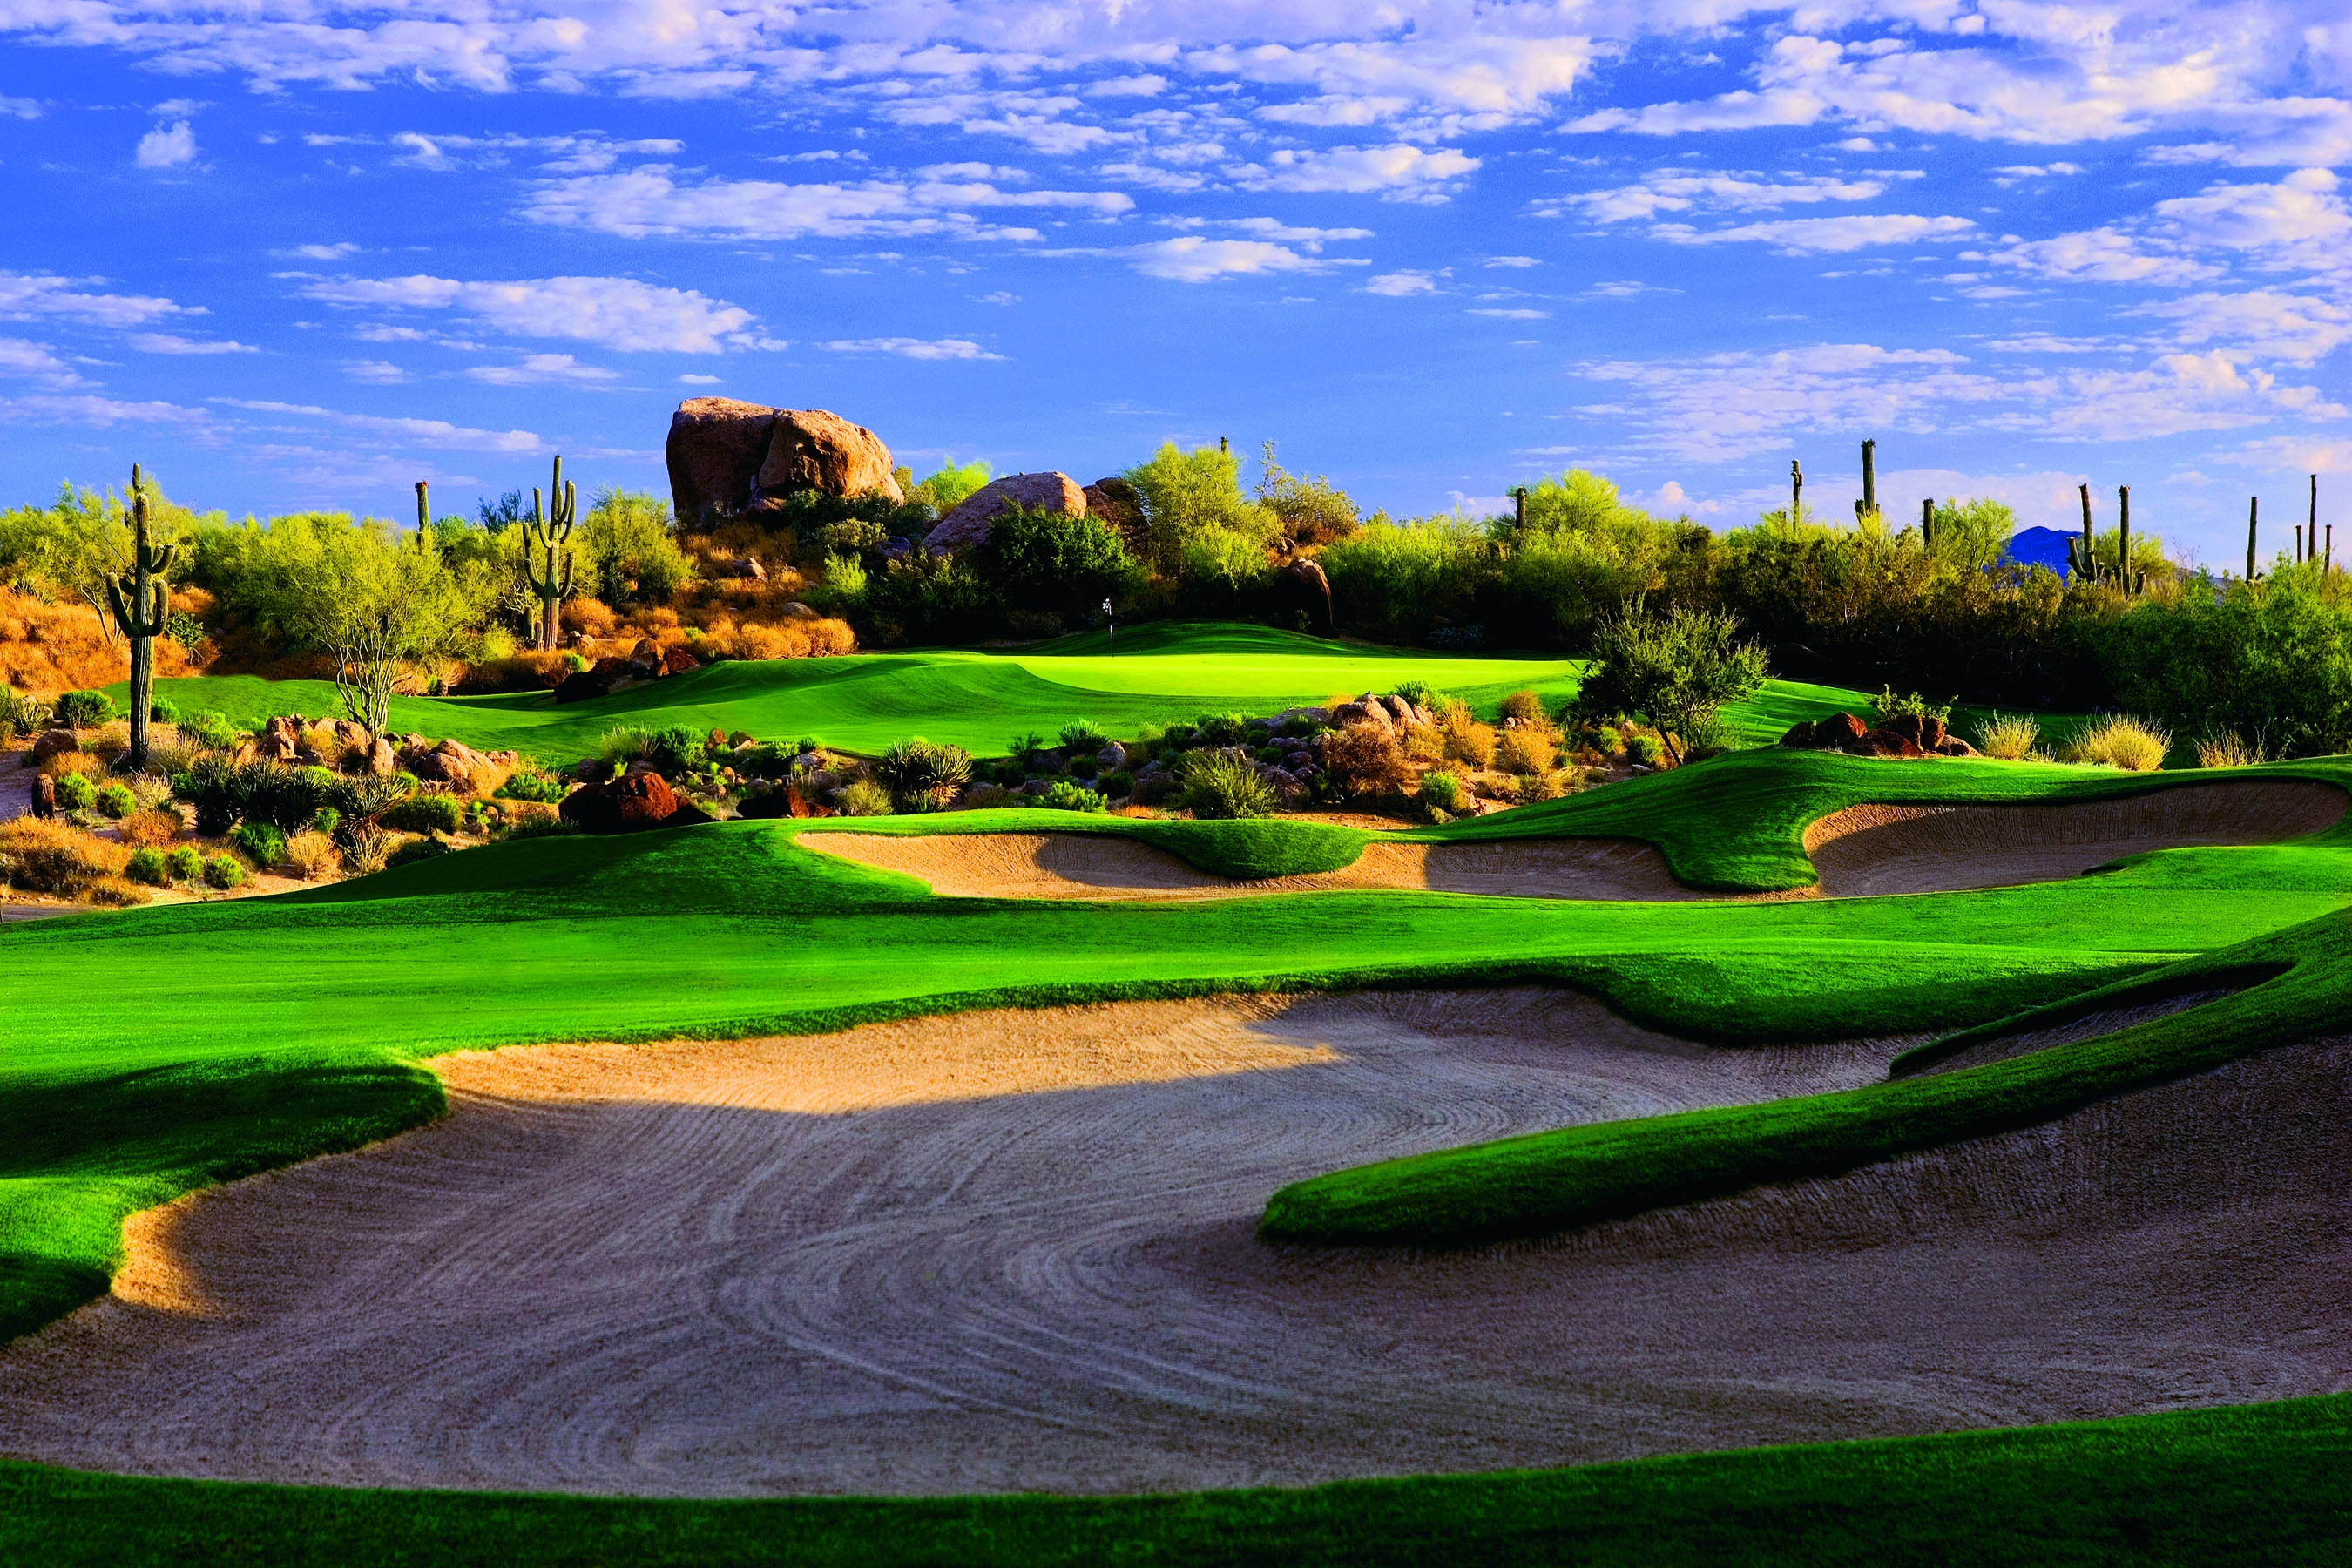 TROON NORTH GOLF CLUB'S PINNACLE COURSE TO REOPEN  OCTOBER 5th FOLLOWING FOUR-MONTH ENHANCEMENT PROJ